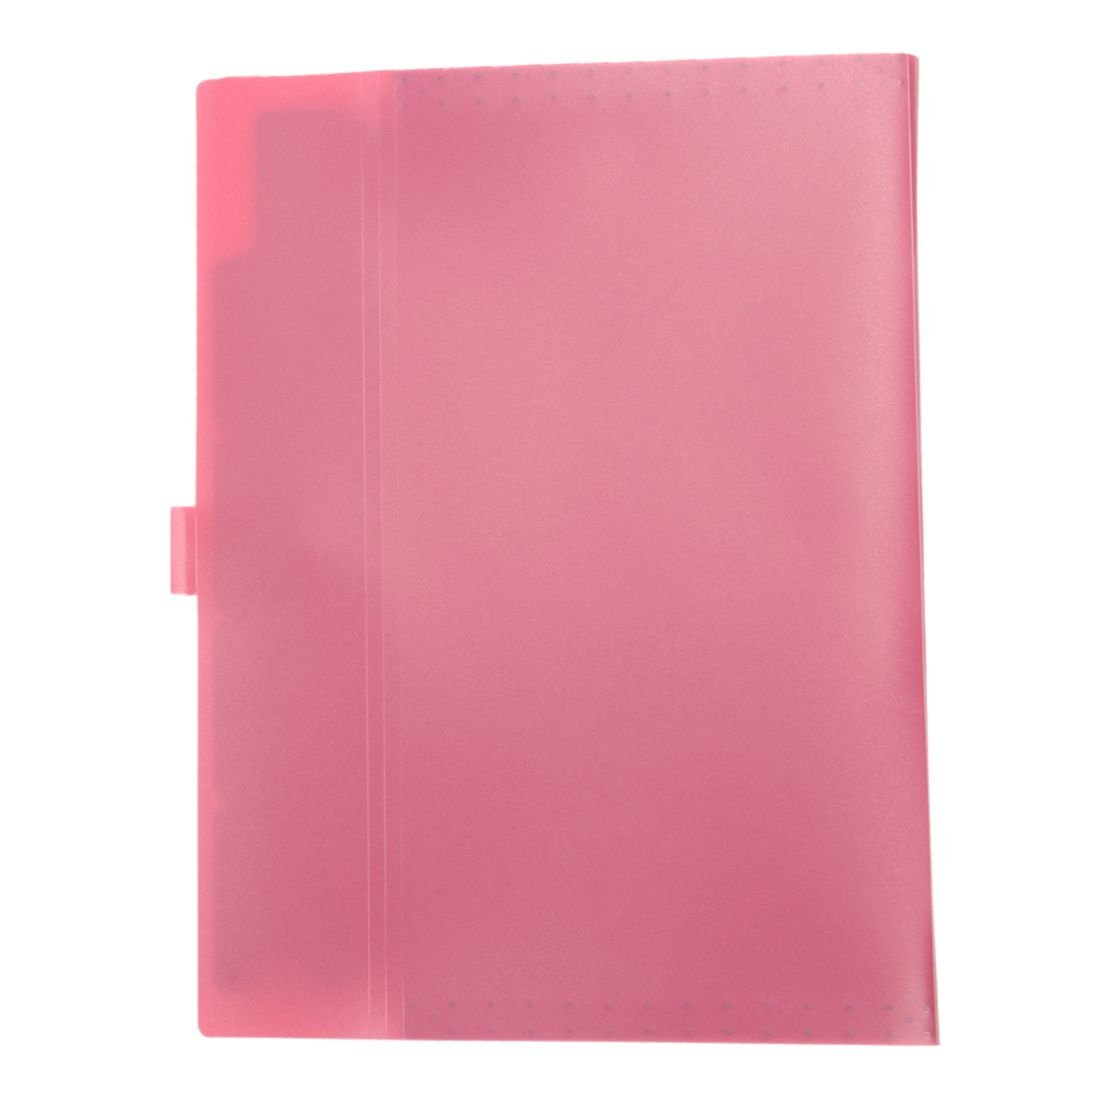 Amazon.com : SODIAL(R) Kawaii FoldersStationery Carpeta File Folder 5layers Archivadores Rings A4 Document Bag Office Carpetas(Red) : Office Products